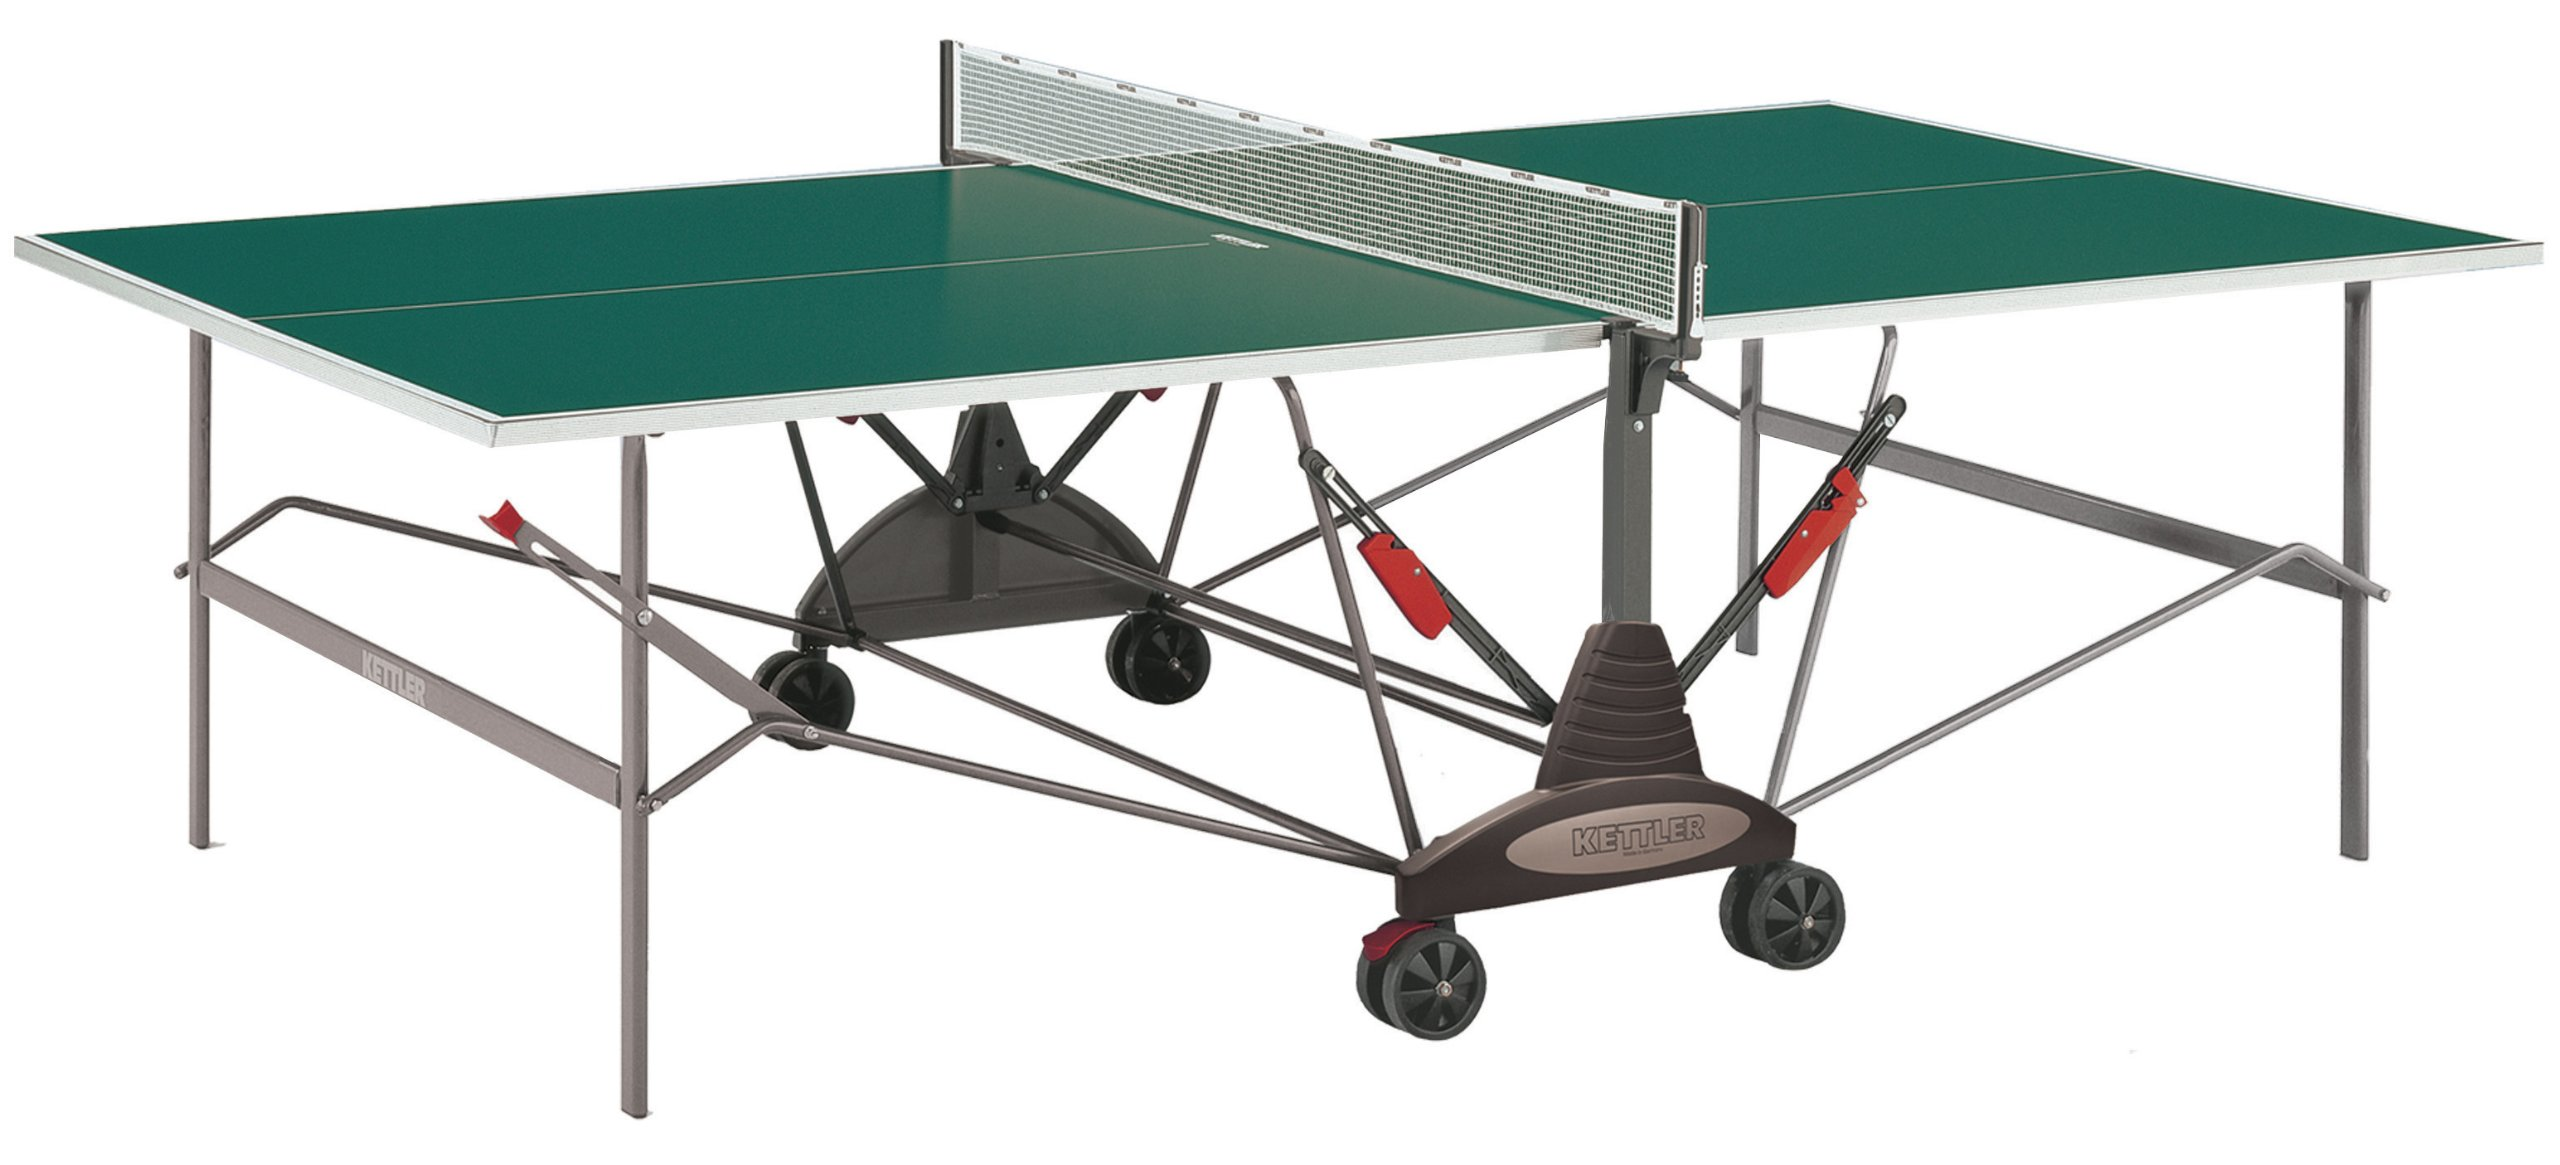 Kettler Stockholm GT Institutional/Tournament Indoor Table Tennis Table, Green Top by KETTLER